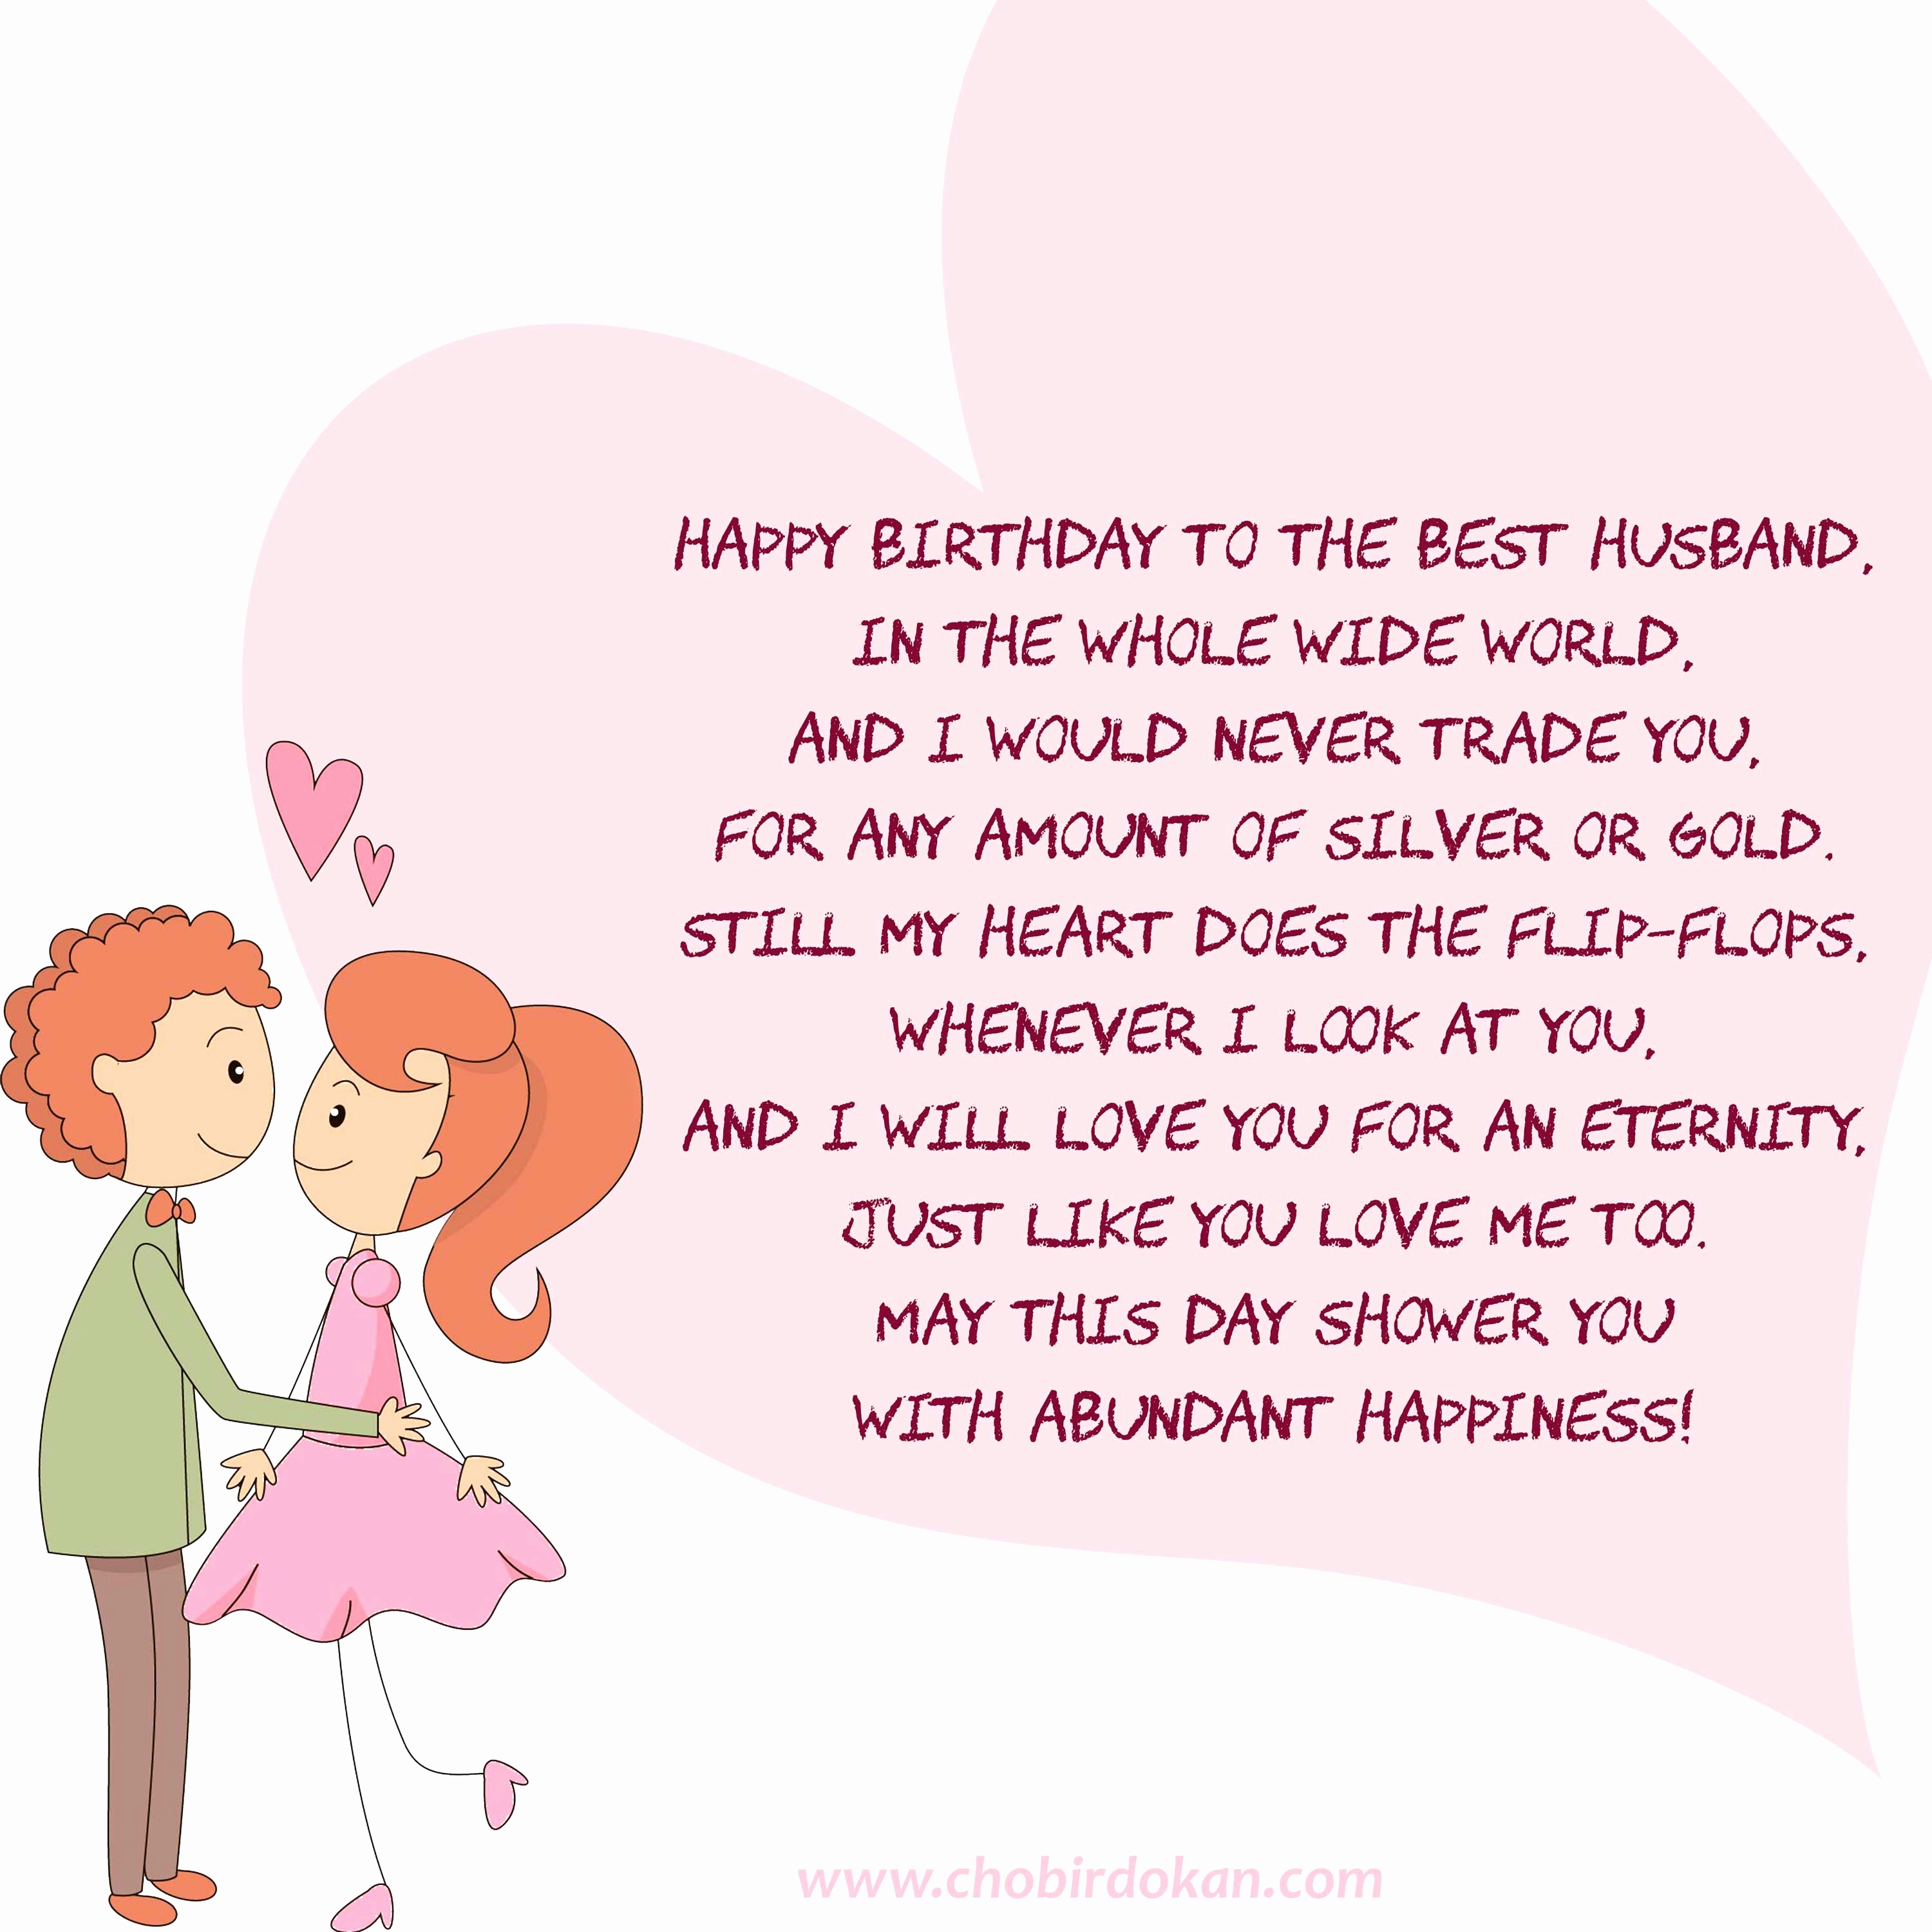 birthday poem for wife ; wife-birthday-card-elegant-happy-birthday-poems-for-him-cute-poetry-boyfriend-husband-card-of-wife-birthday-card